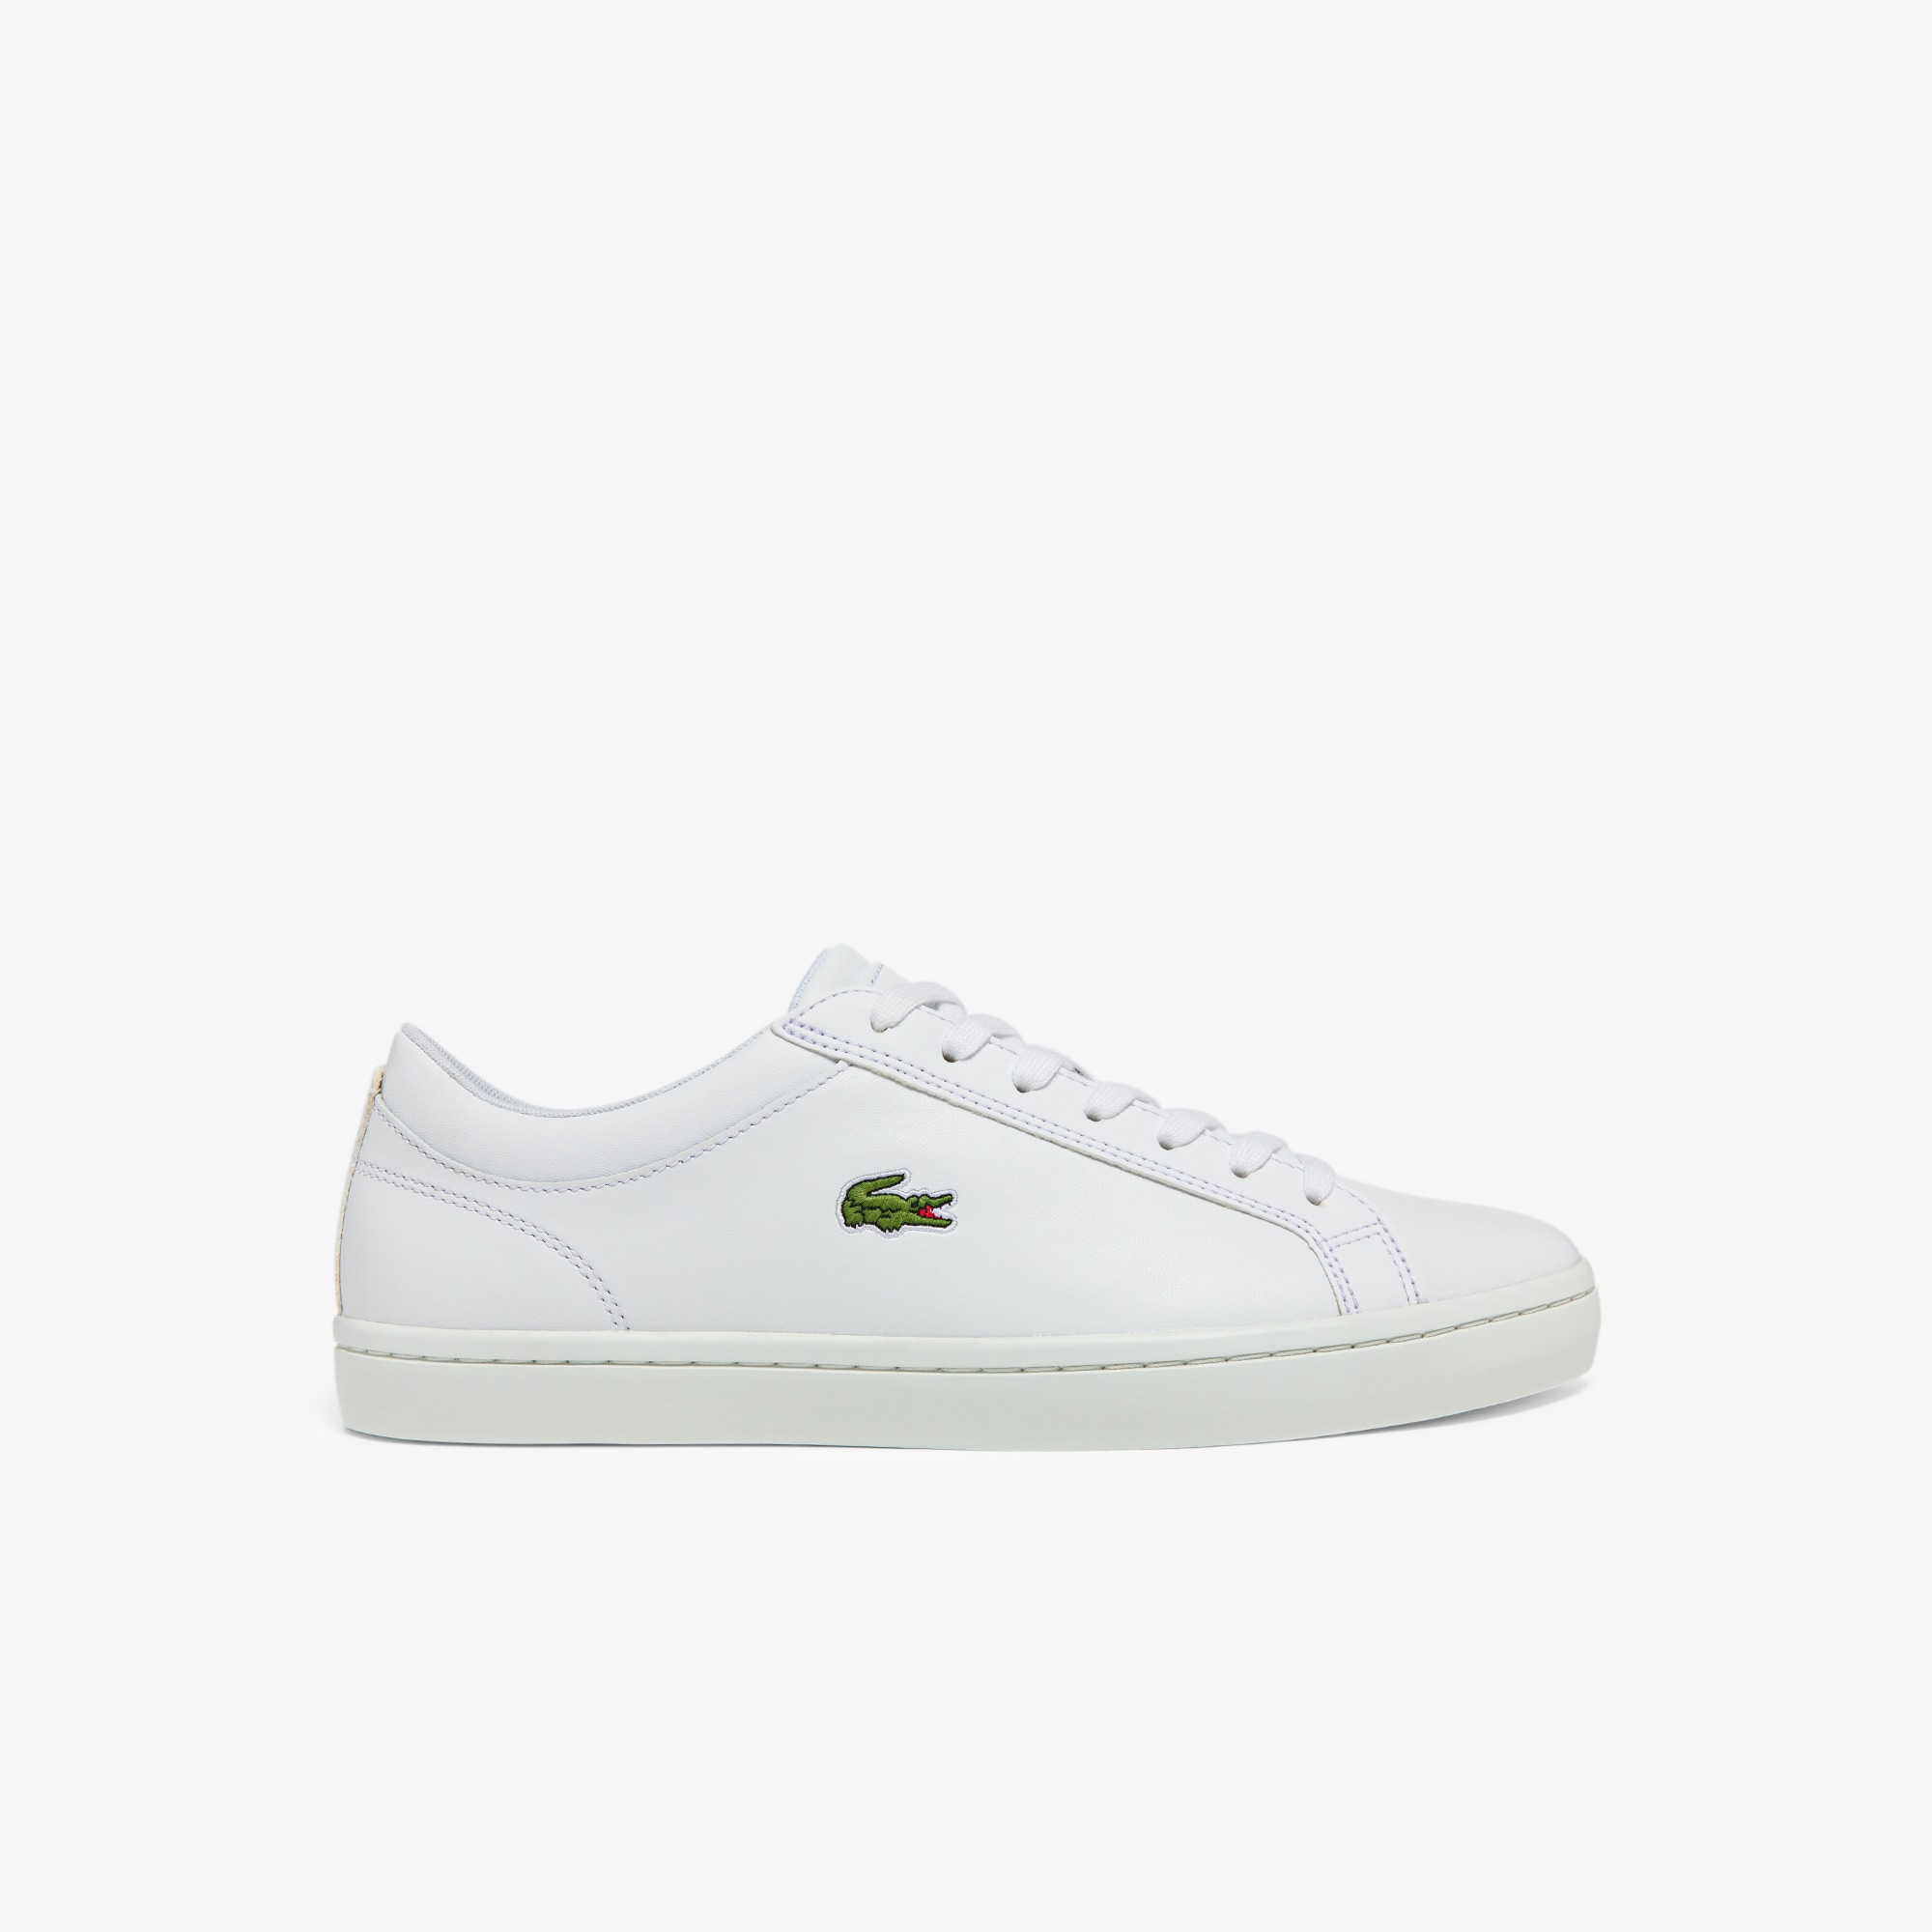 Lacoste Sneakers Straightset White Leather